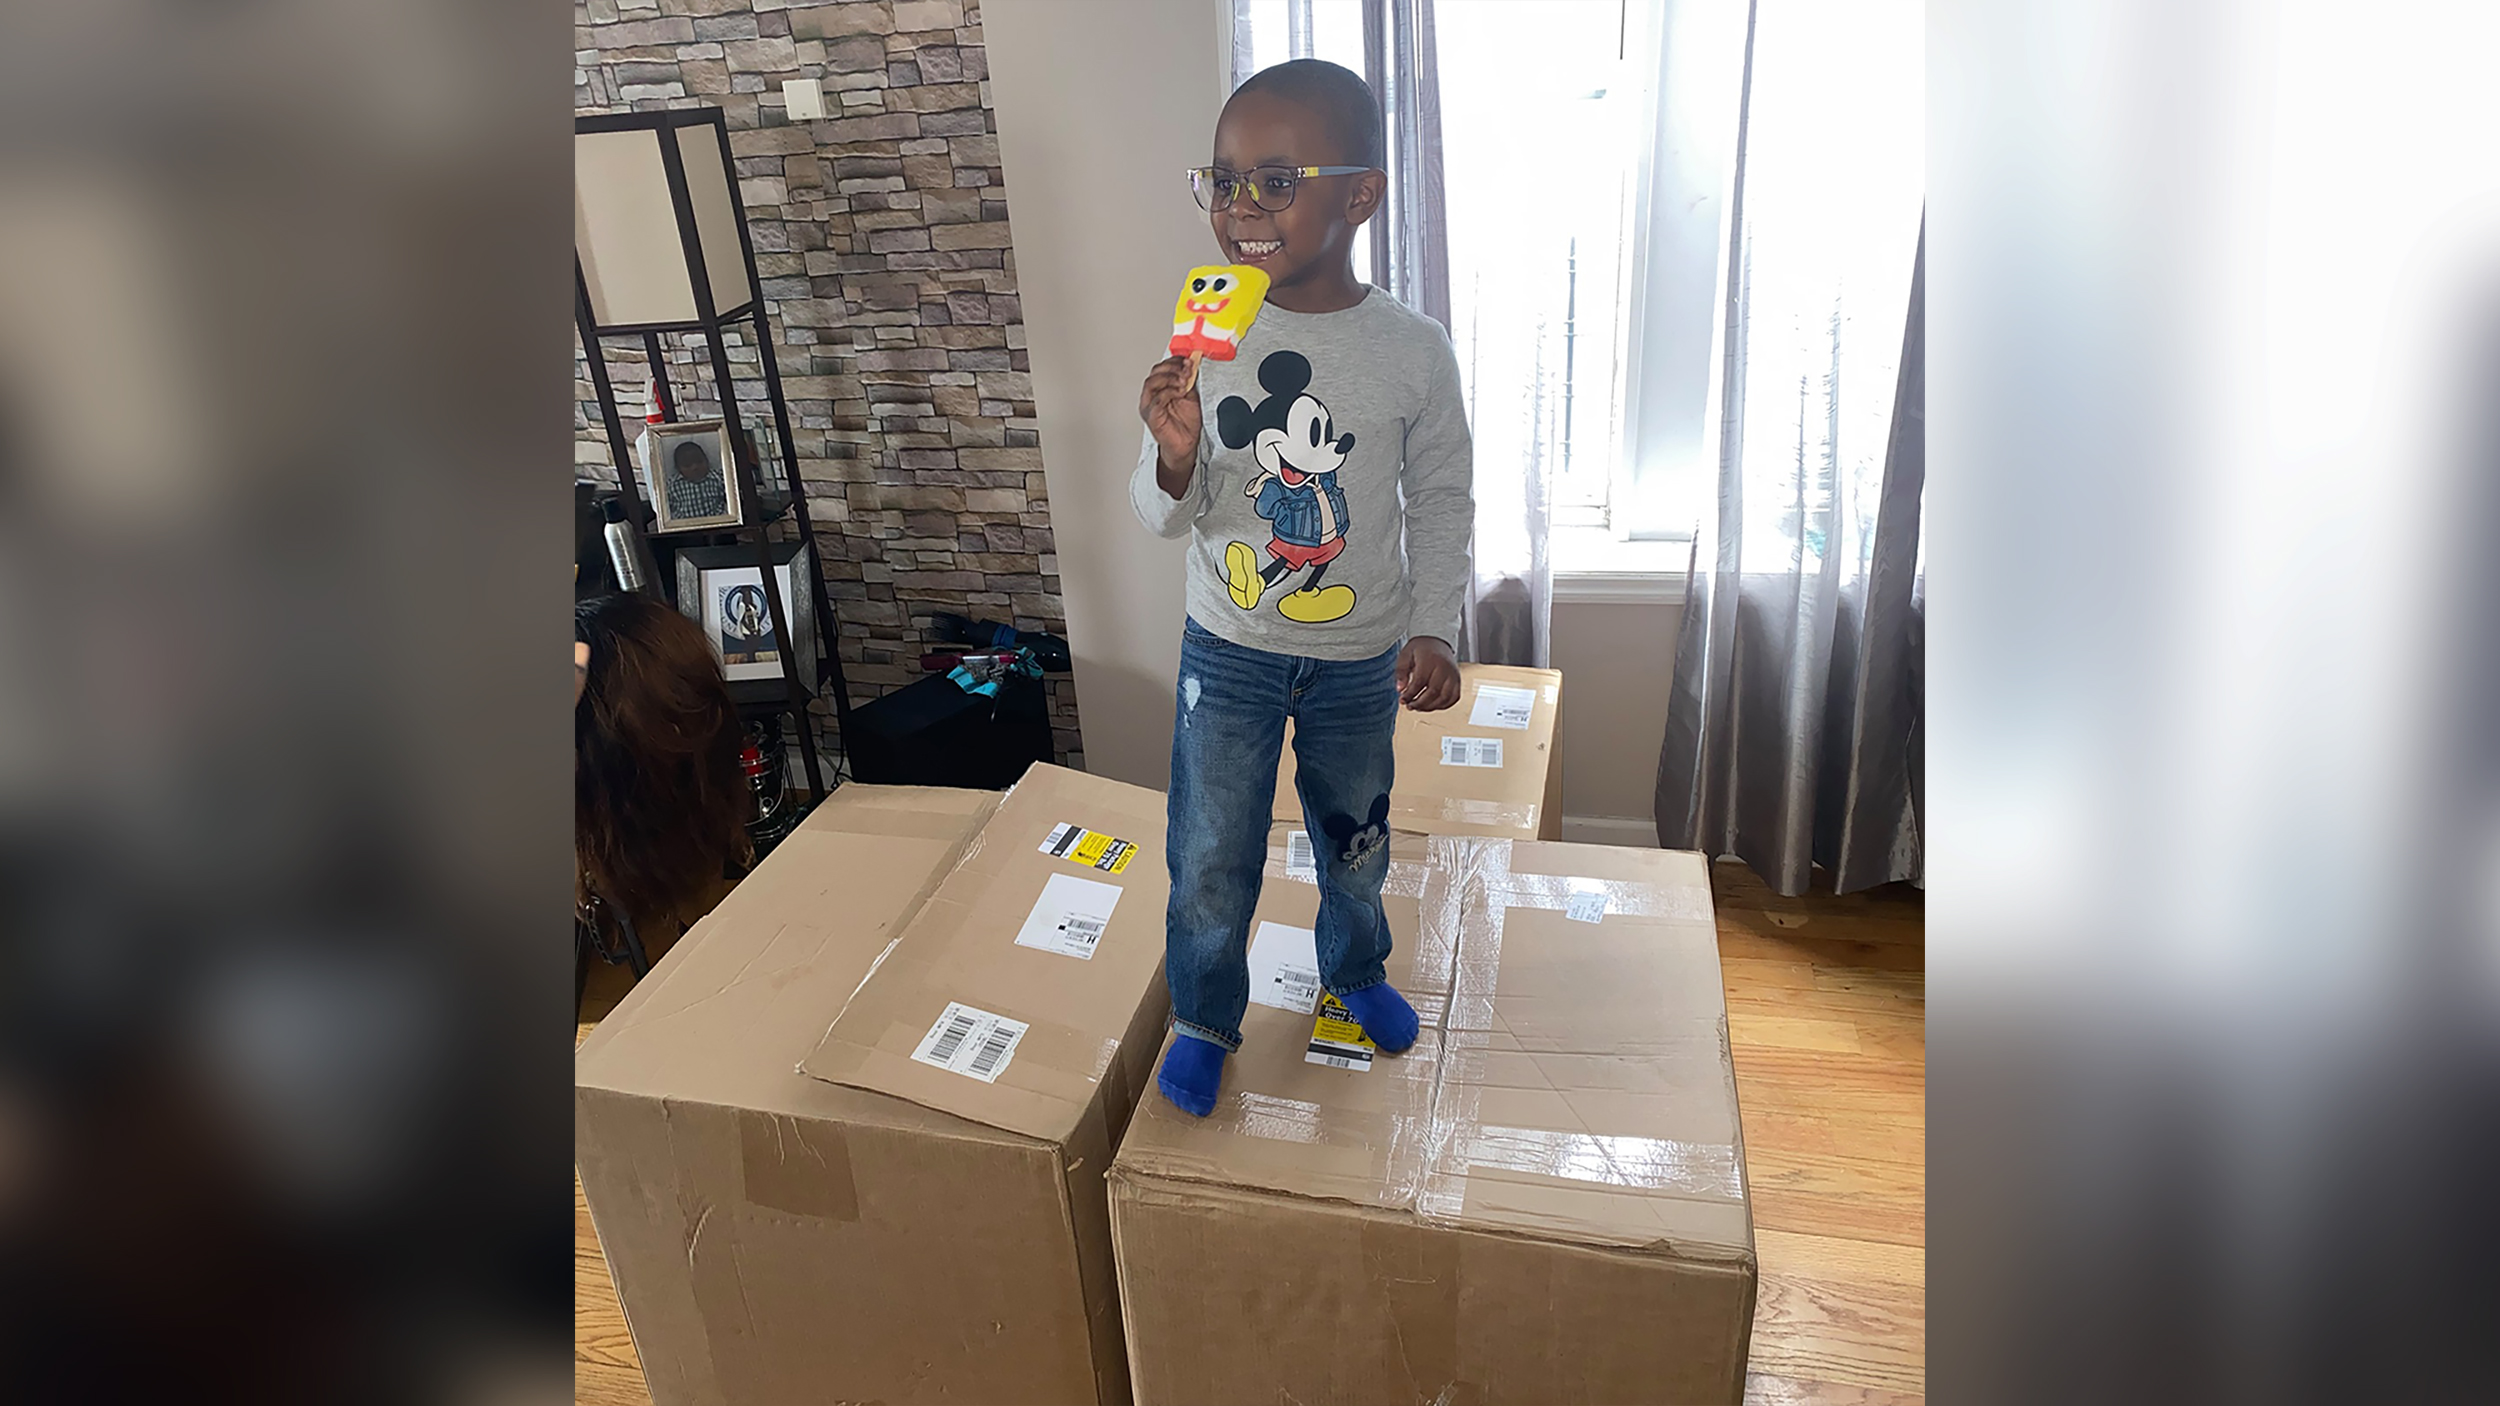 4-year-old hacks mom's Amazon Prime account and orders 51 boxes of SpongeBob SquarePants Popsicles